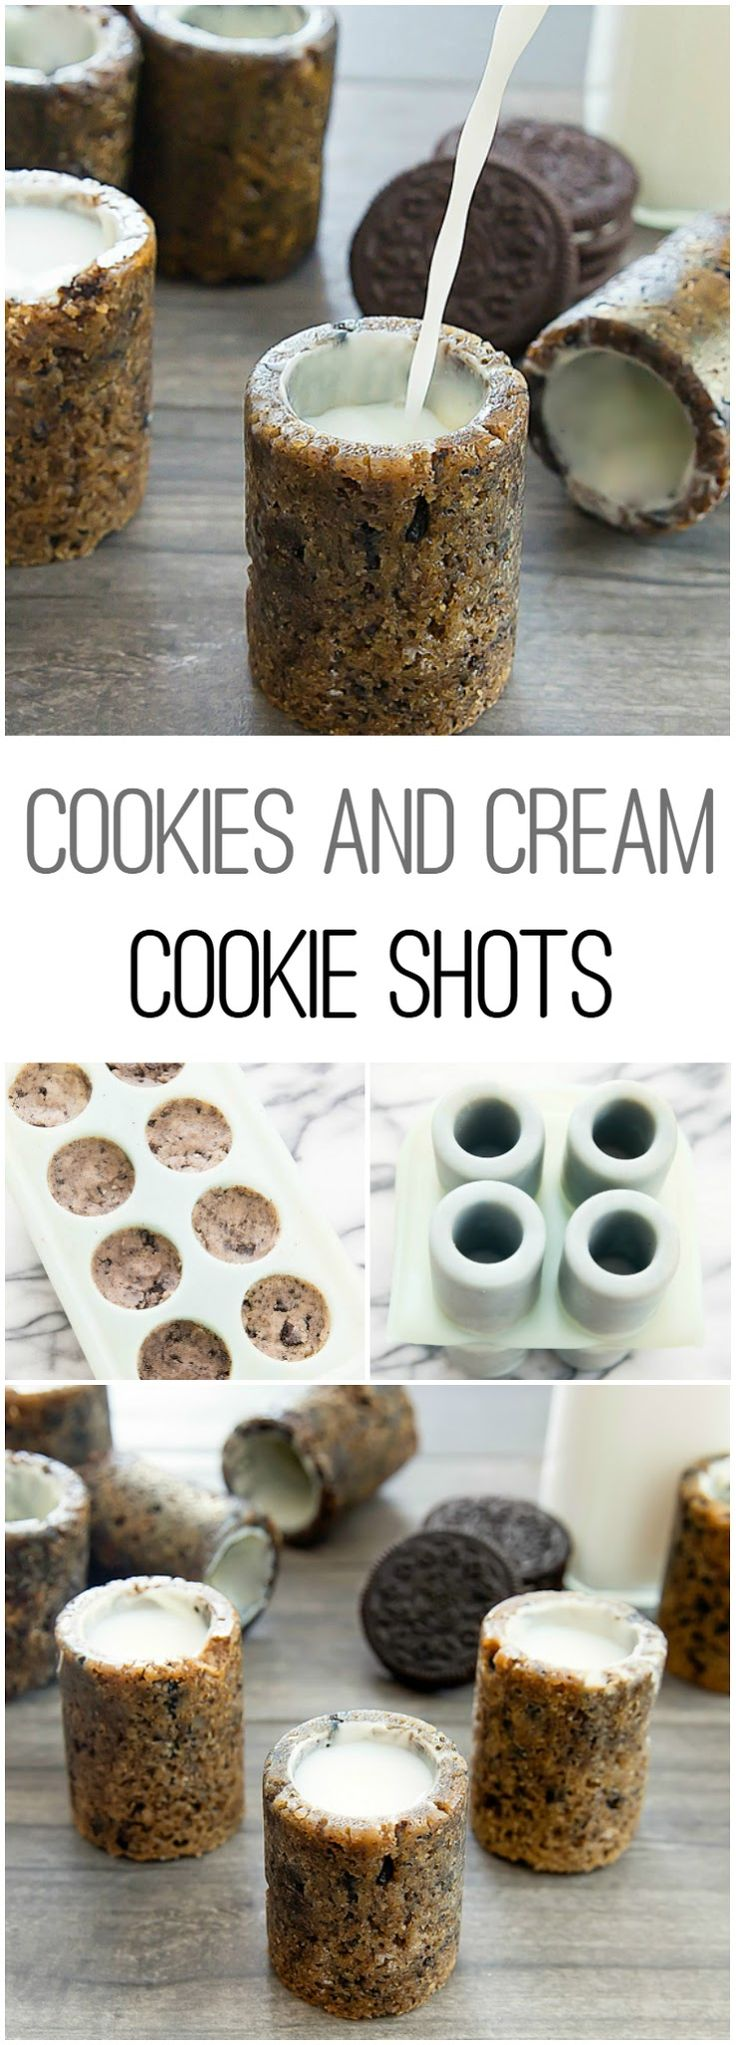 Cookies and Cream Cookie Shots!